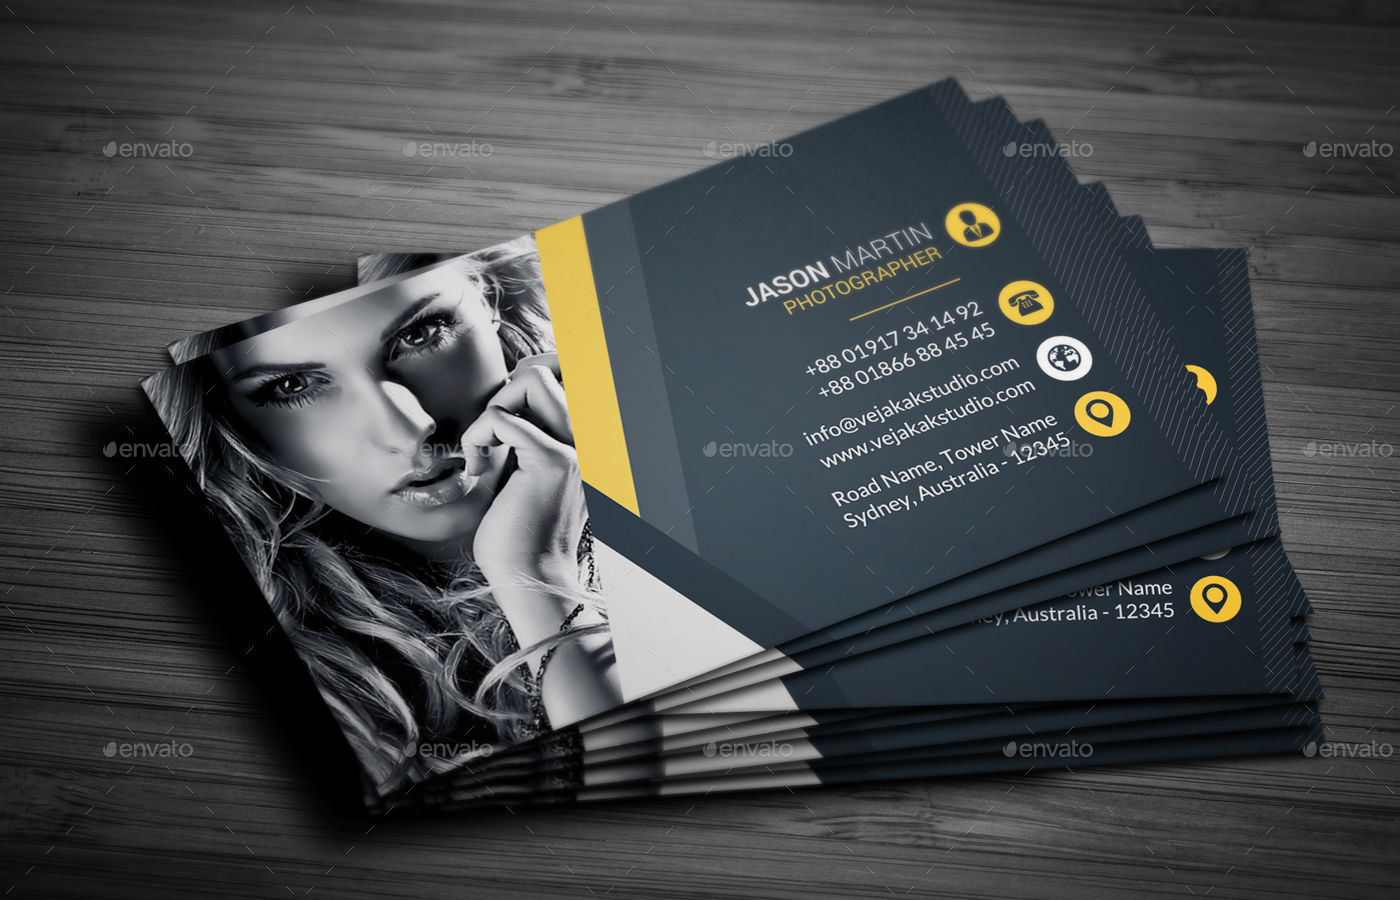 Photography business card unlimitedgamers photography business card colourmoves